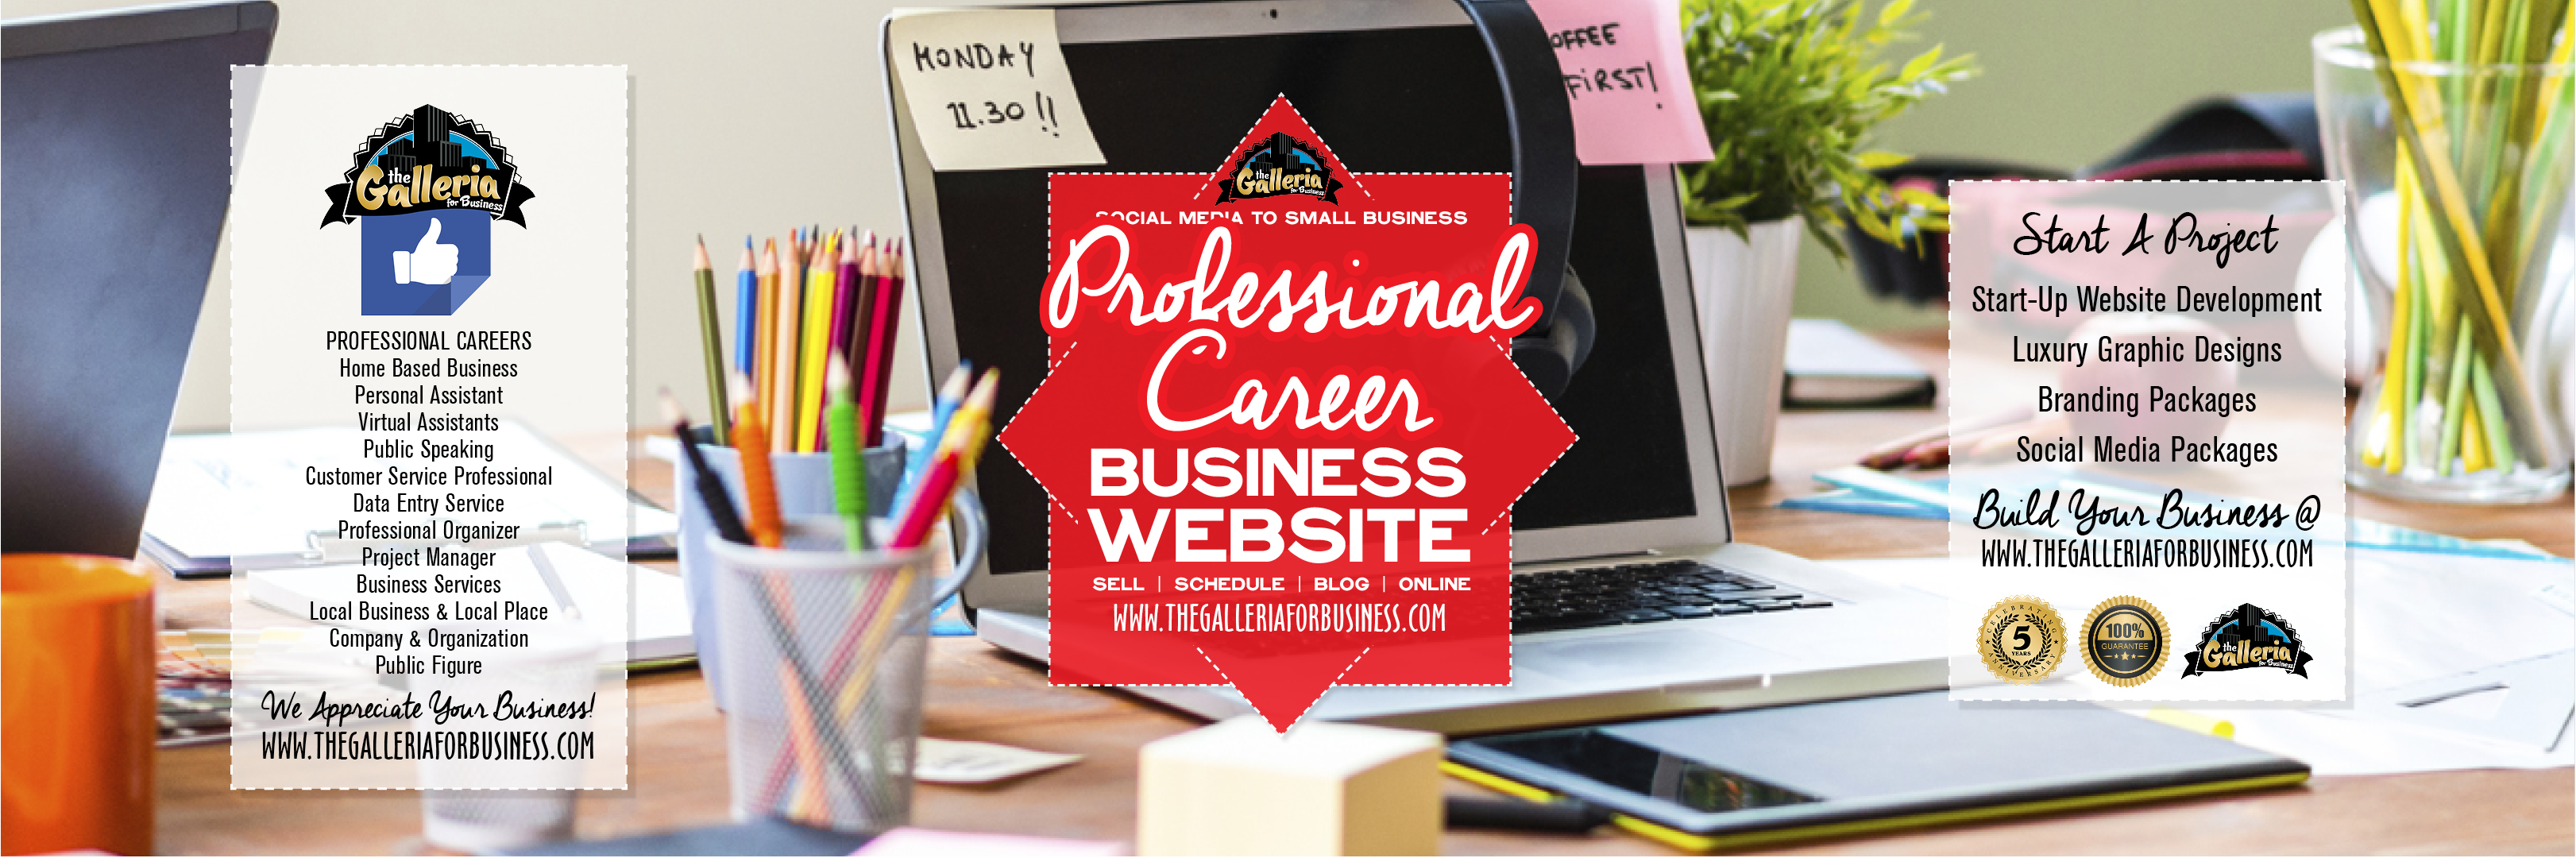 Professional Career Business